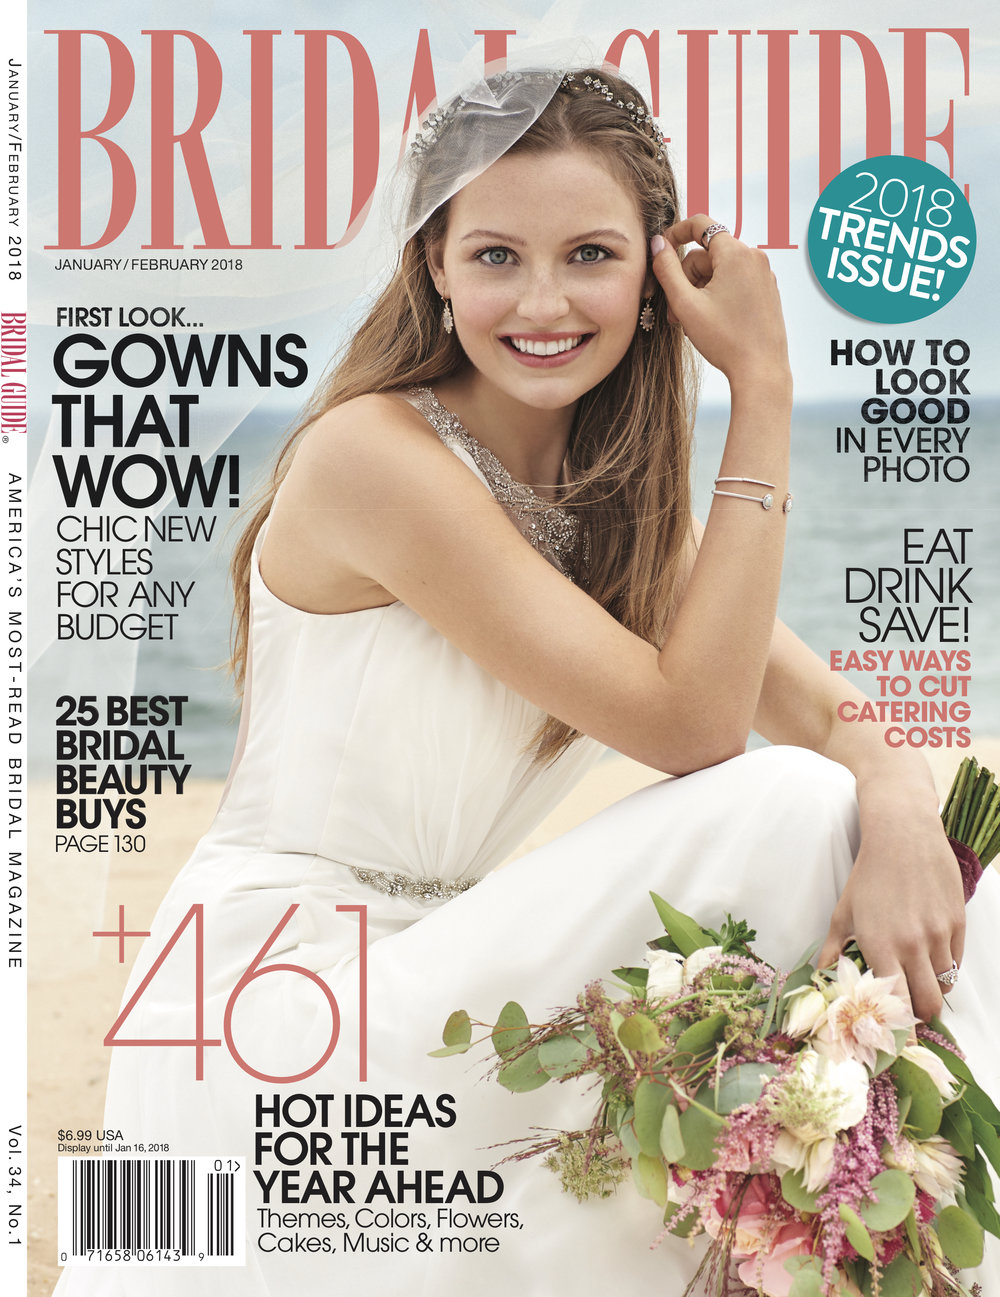 Bridal Guide wedding magazine.jpg